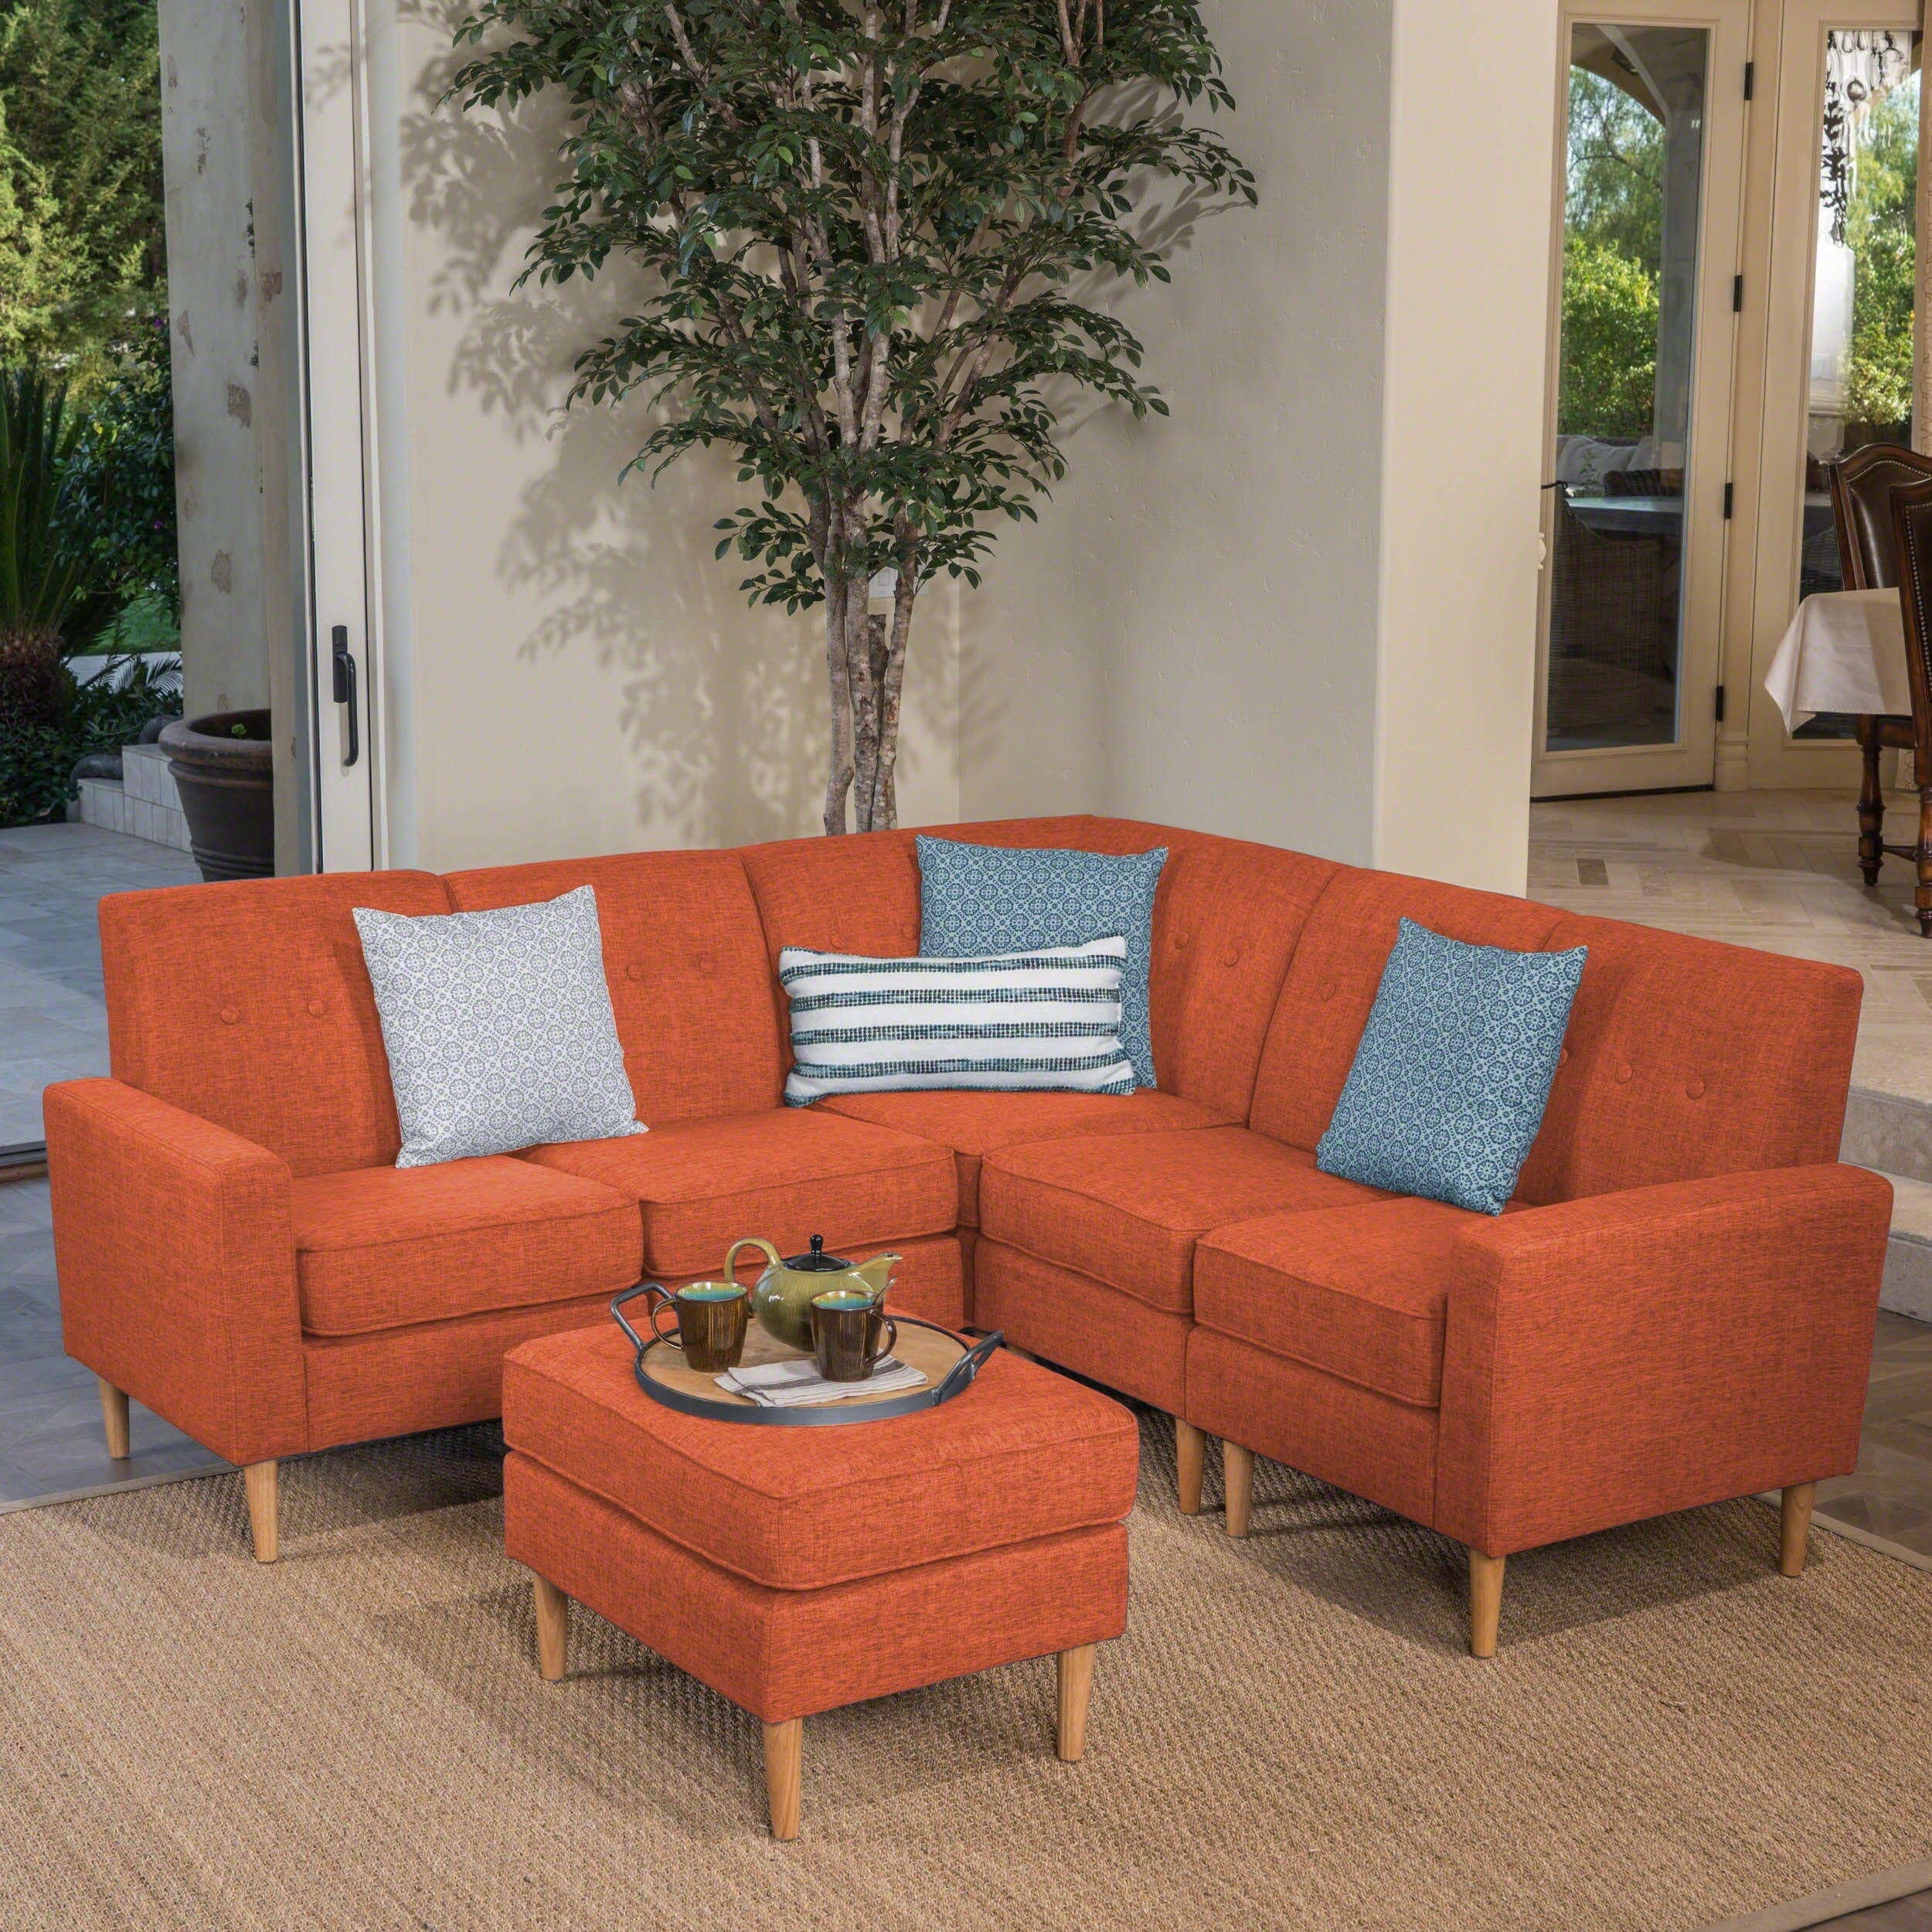 Details About Sawyer Mid Century Modern 6 Piece Fabric Sectional Sofa Set